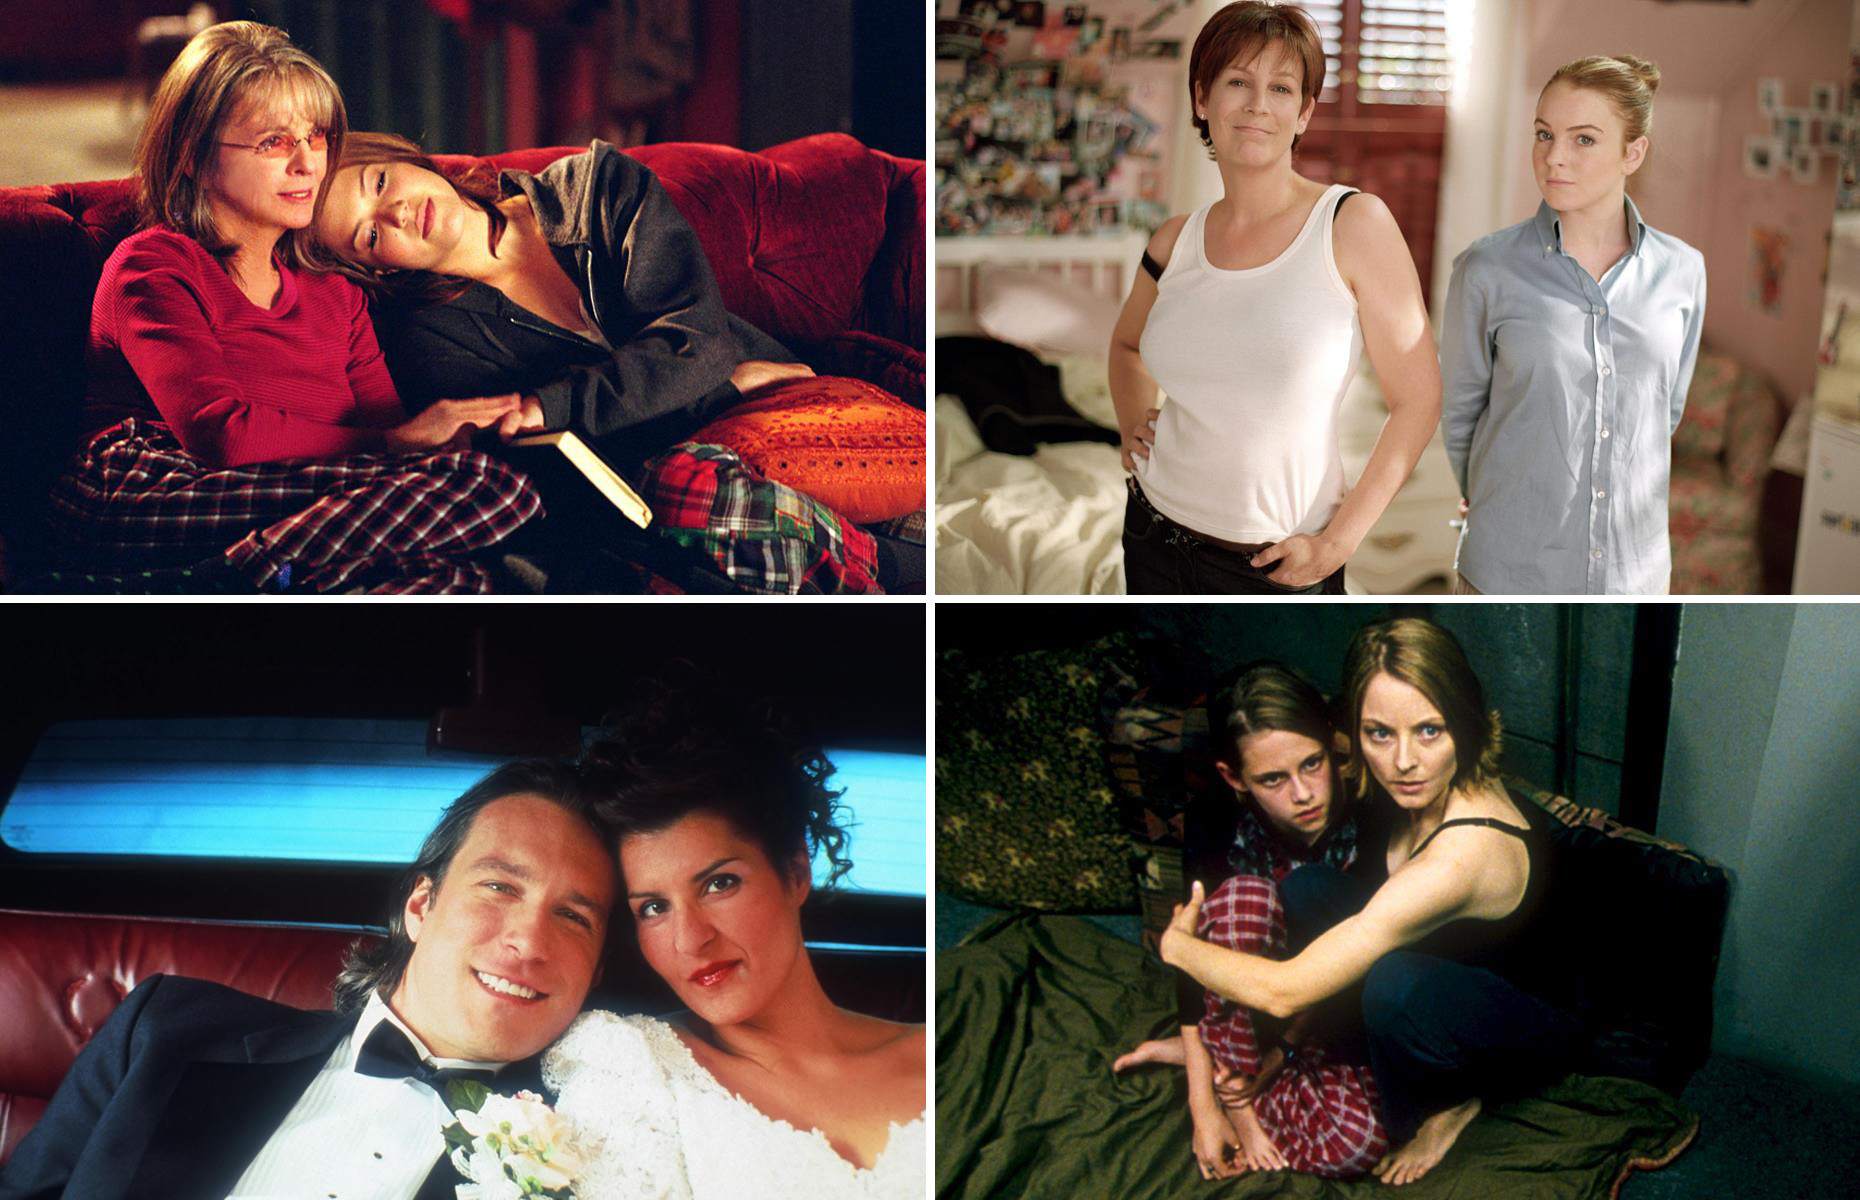 perfect films for a momdaughter movie night